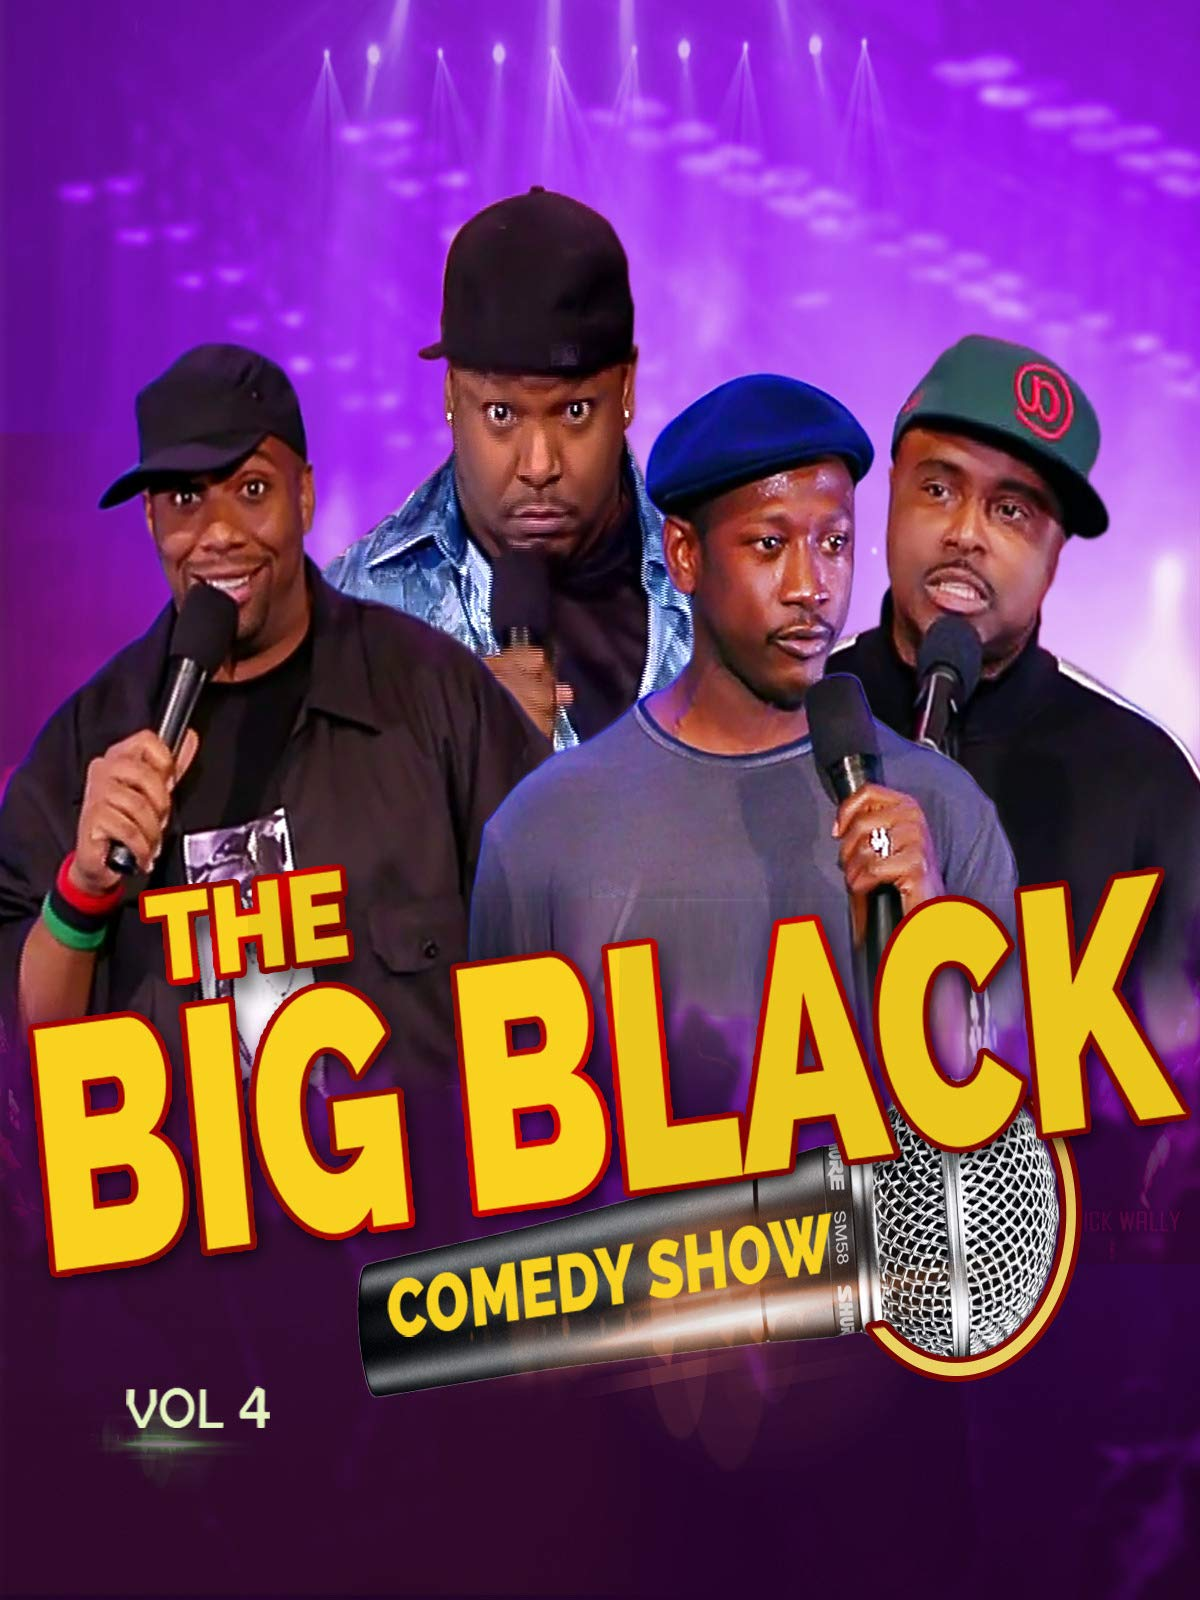 The Big Black Comedy Show, Vol. 4